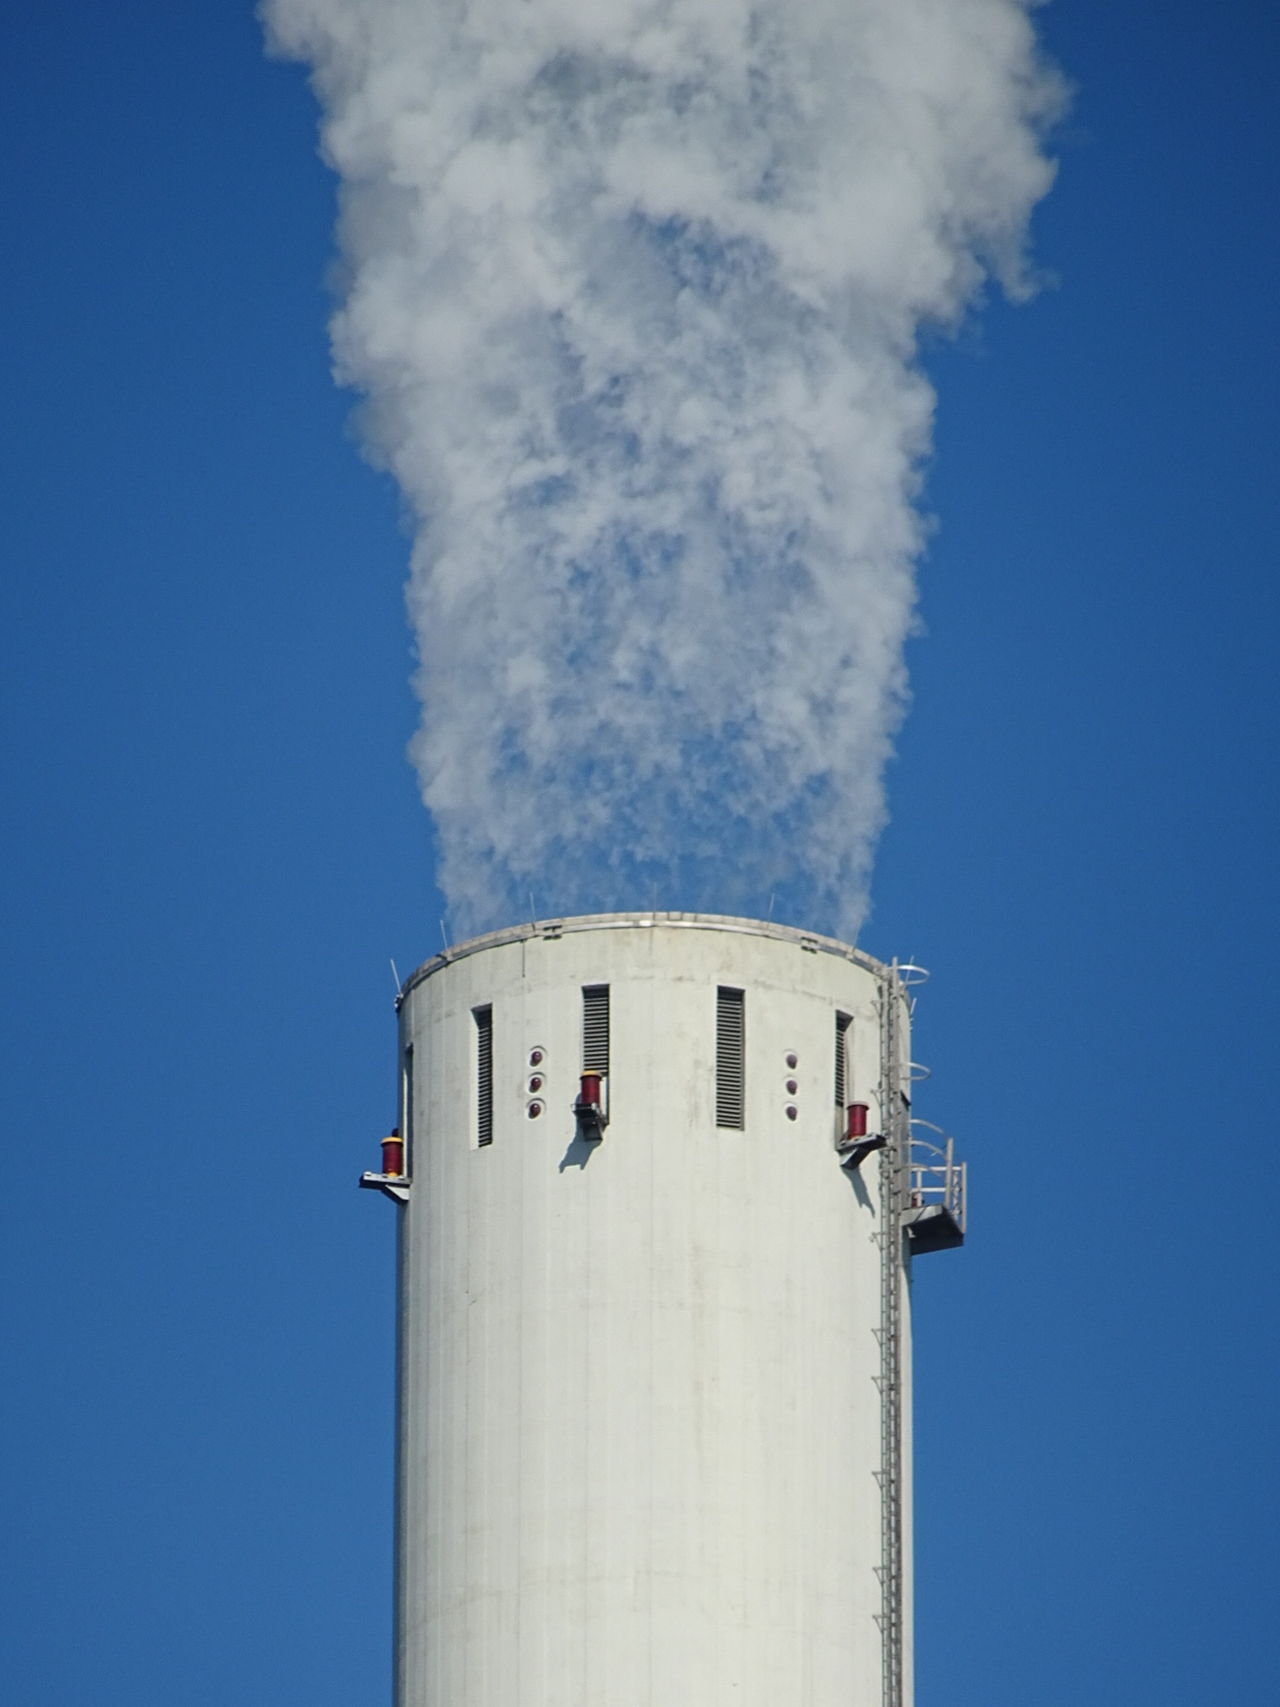 Pollution In My World Pollution Pollution Of The Environment Umweltverschmutzung Business Finance And Industry Clear Sky Day No People Low Angle View Architecture Industry Industrie Mannheim Neckarau Perspective Photography Industrial Industrial Landscapes Industrial Photography Mannheim